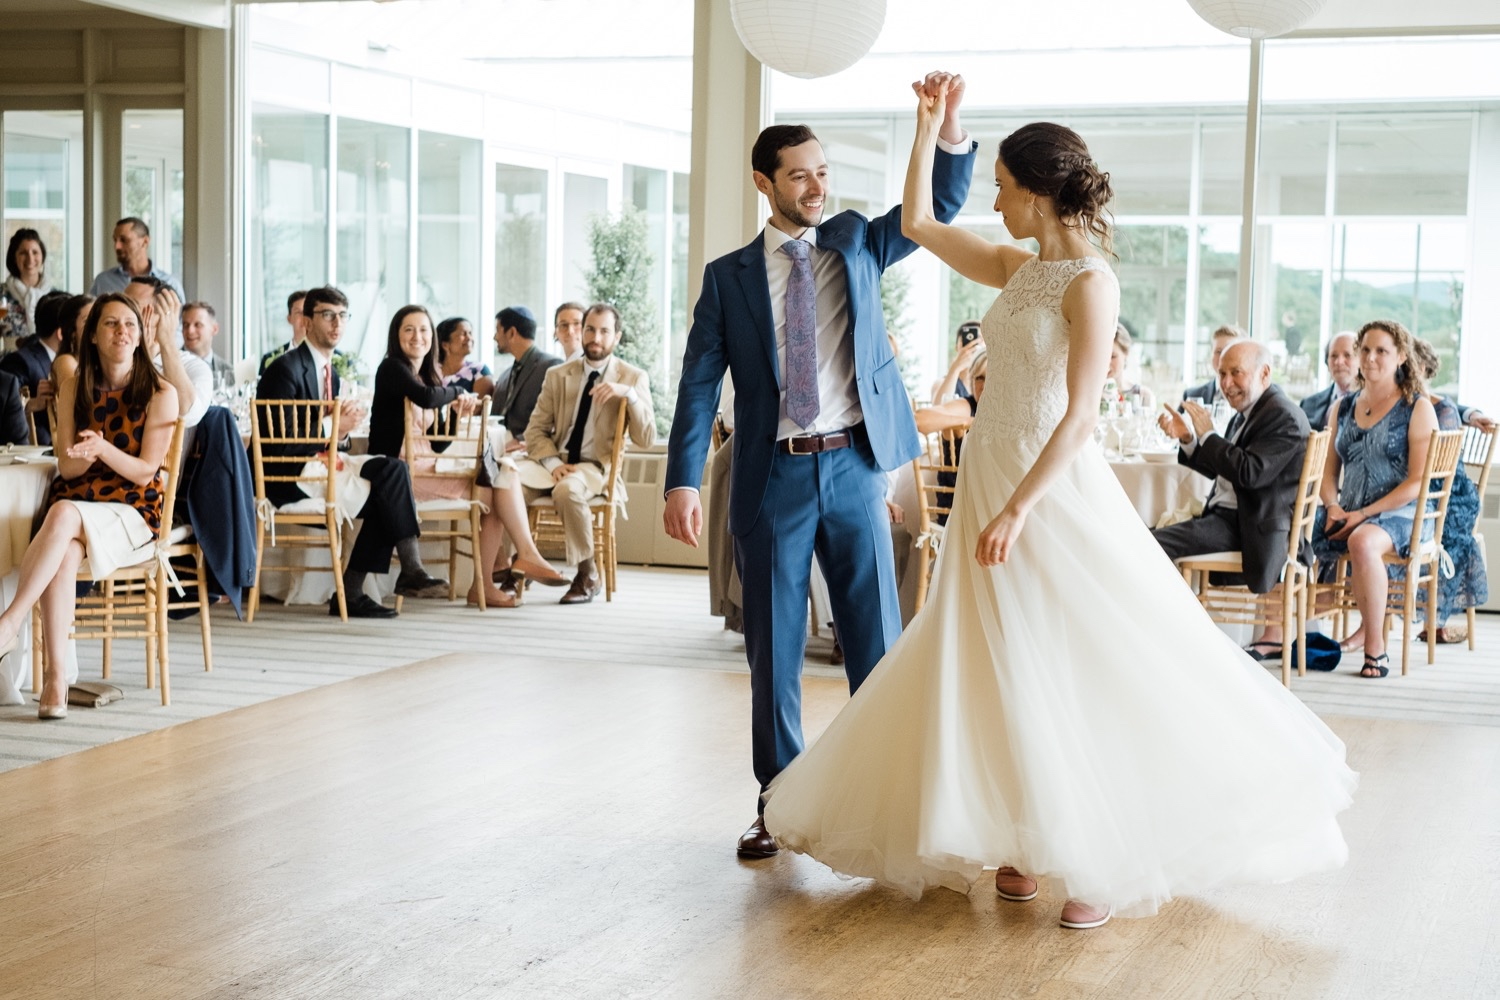 The Garrison Wedding, The Garrison venue, Hudson Valley wedding, hudson valley wedding photographer, catskills wedding photographer, the garrison wedding photos, best catskills wedding photographer, wedding photo inspo, wedding moment inspiration, first dance, first dance photos